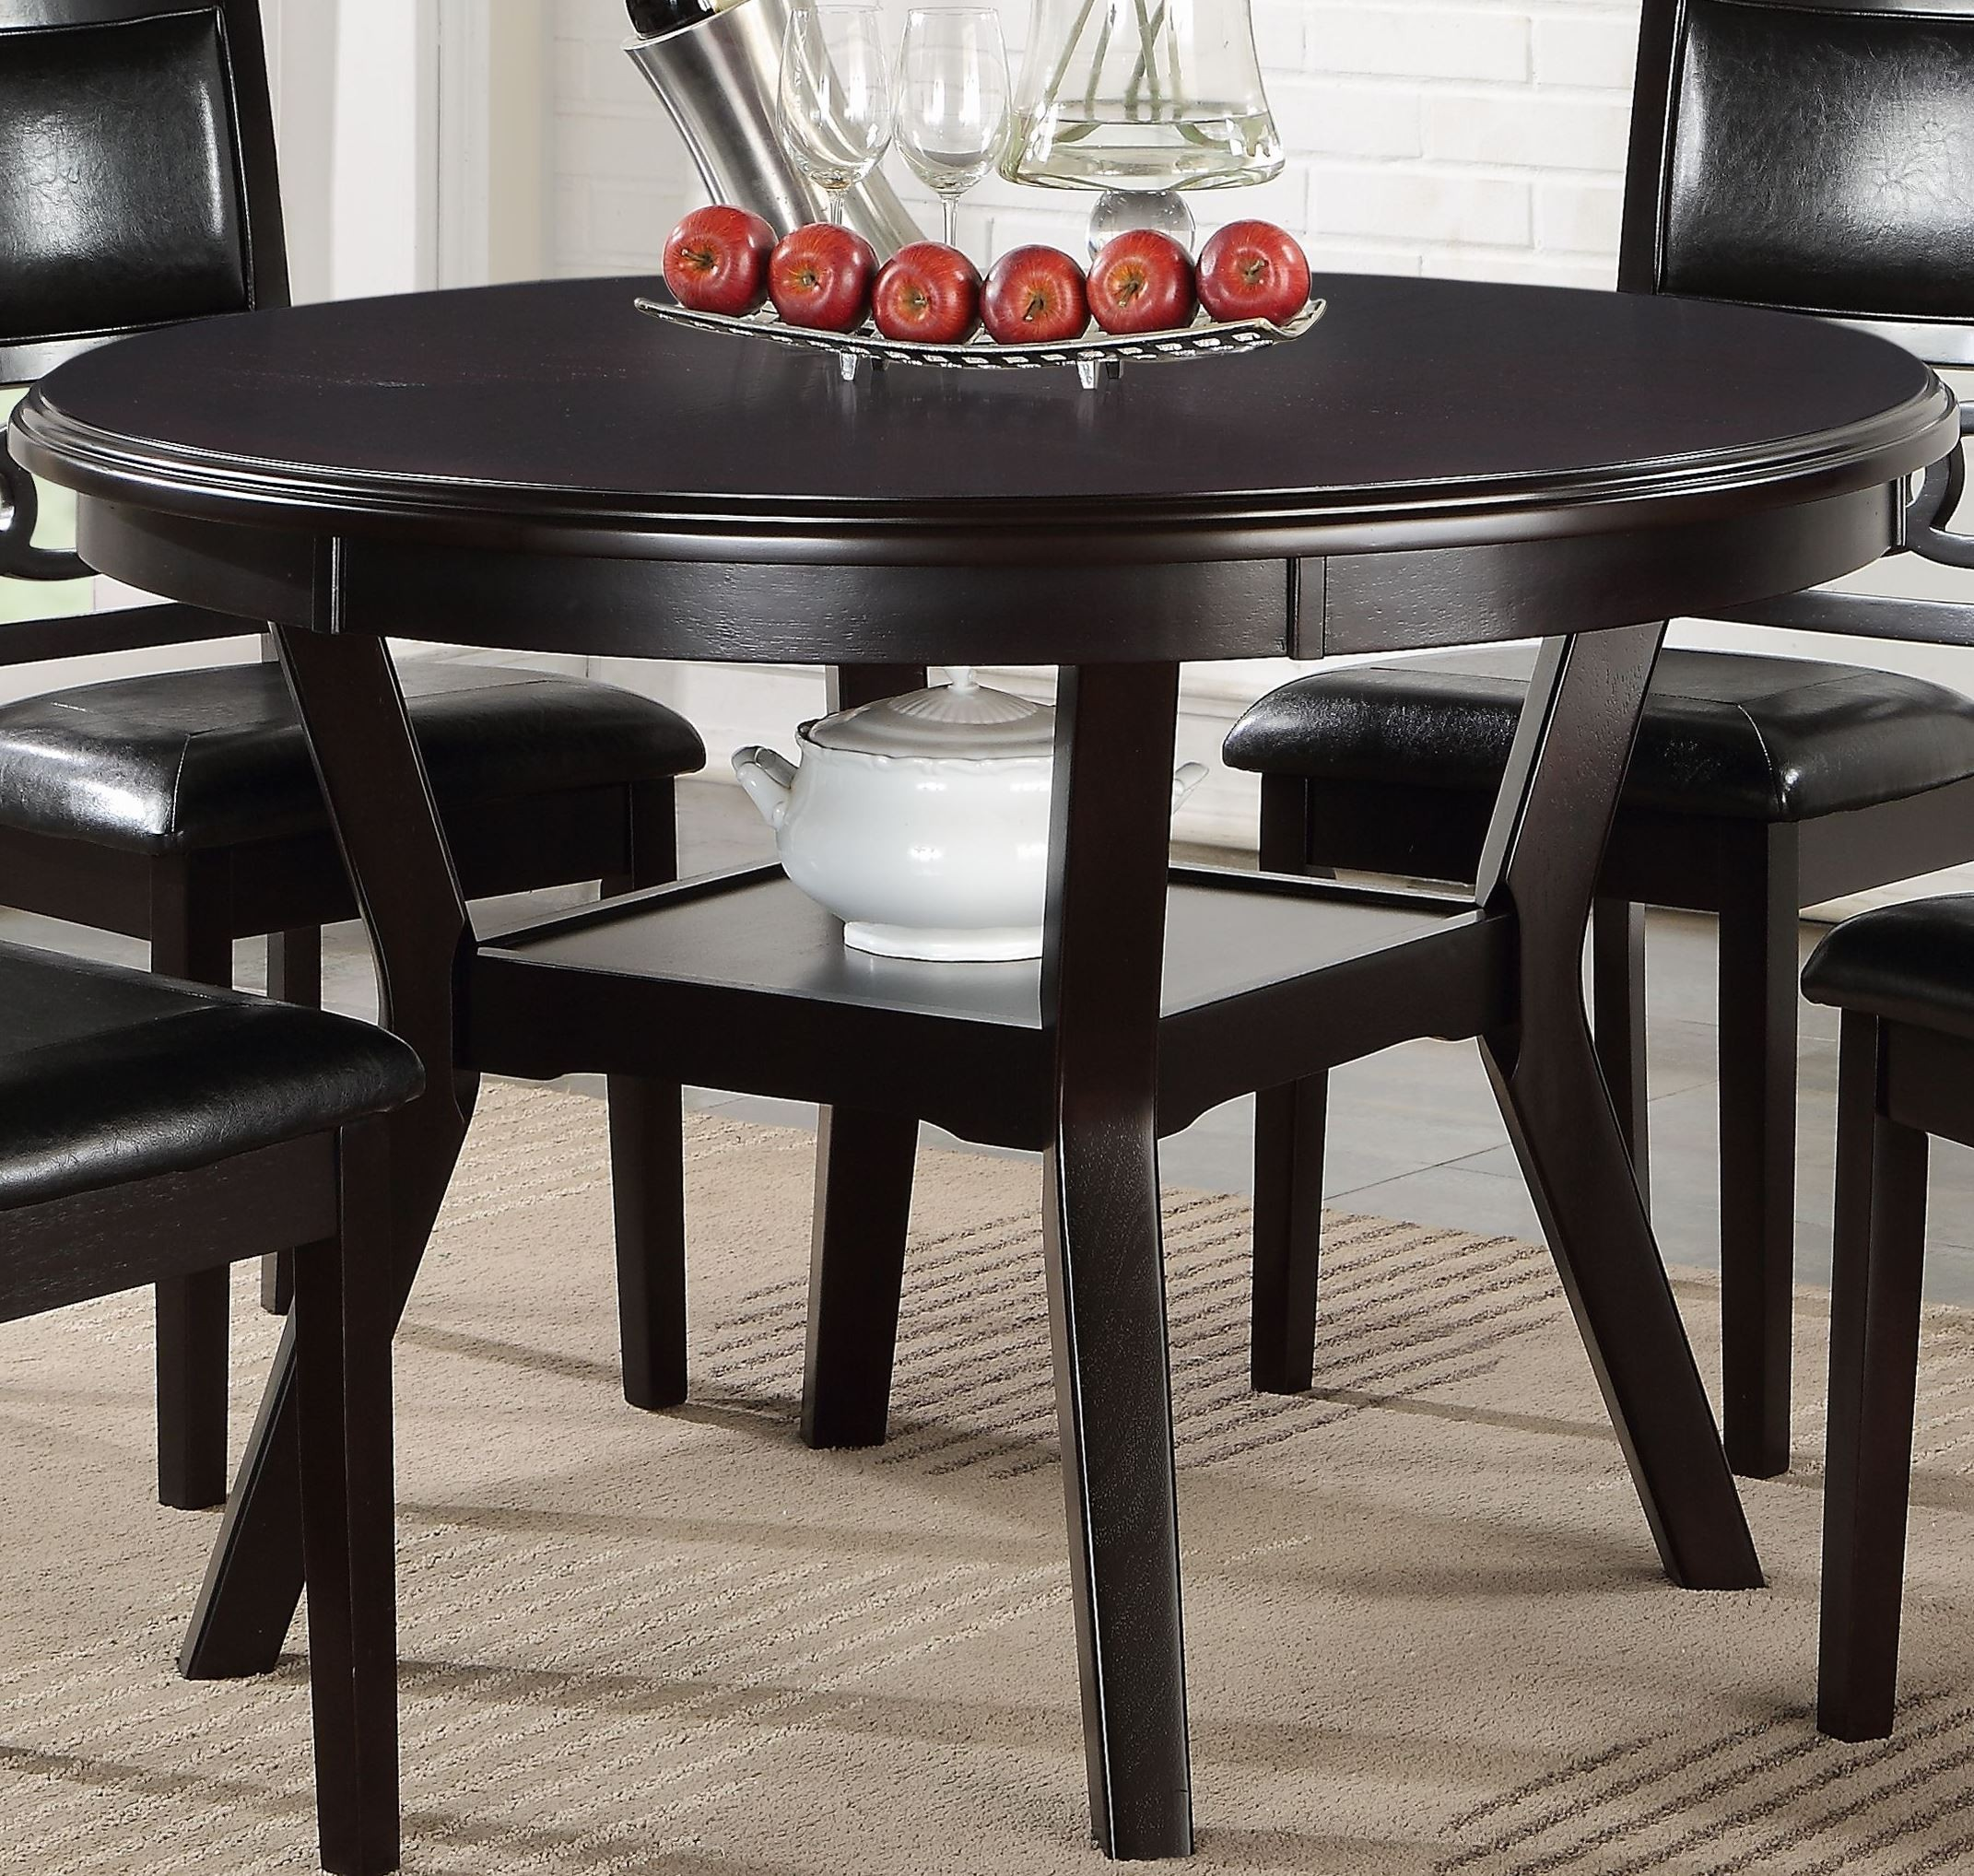 Round Dining Table For 5: 5 Pcs Gia Ebony Round Dining Table Set, D1701-50S-EBO, New